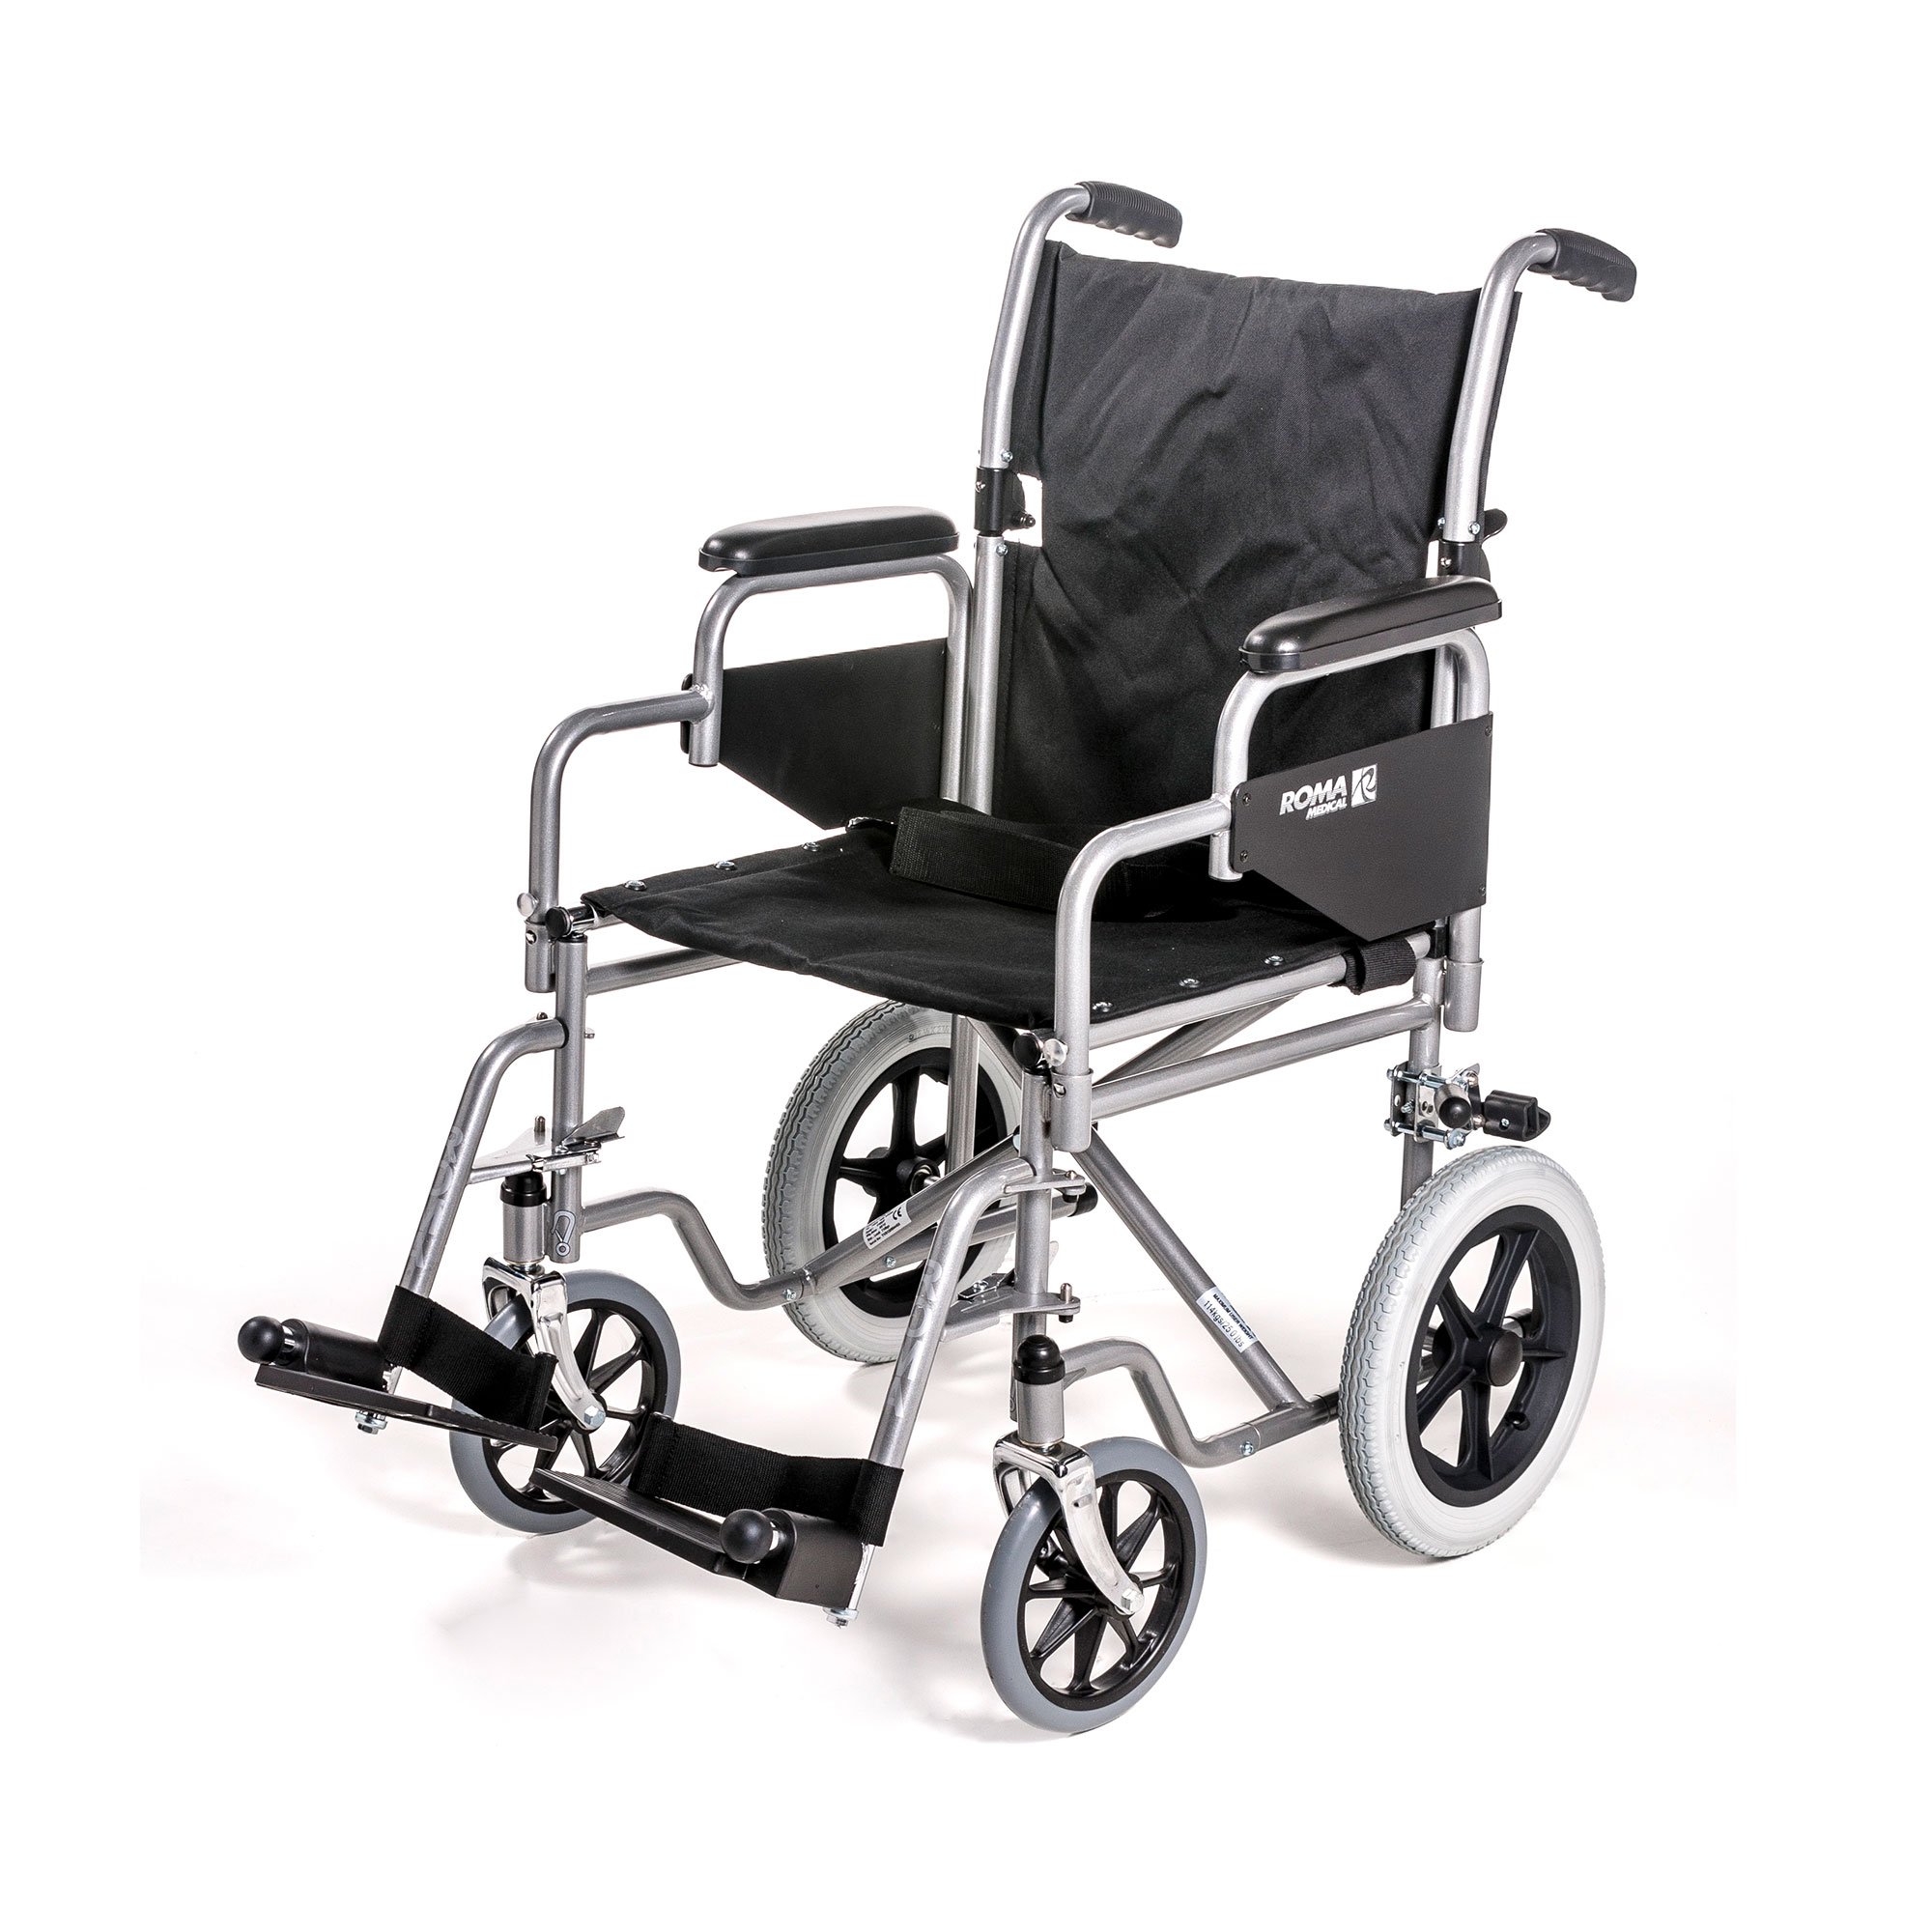 1100 : Car Transit Wheelchair With Detachable Arms